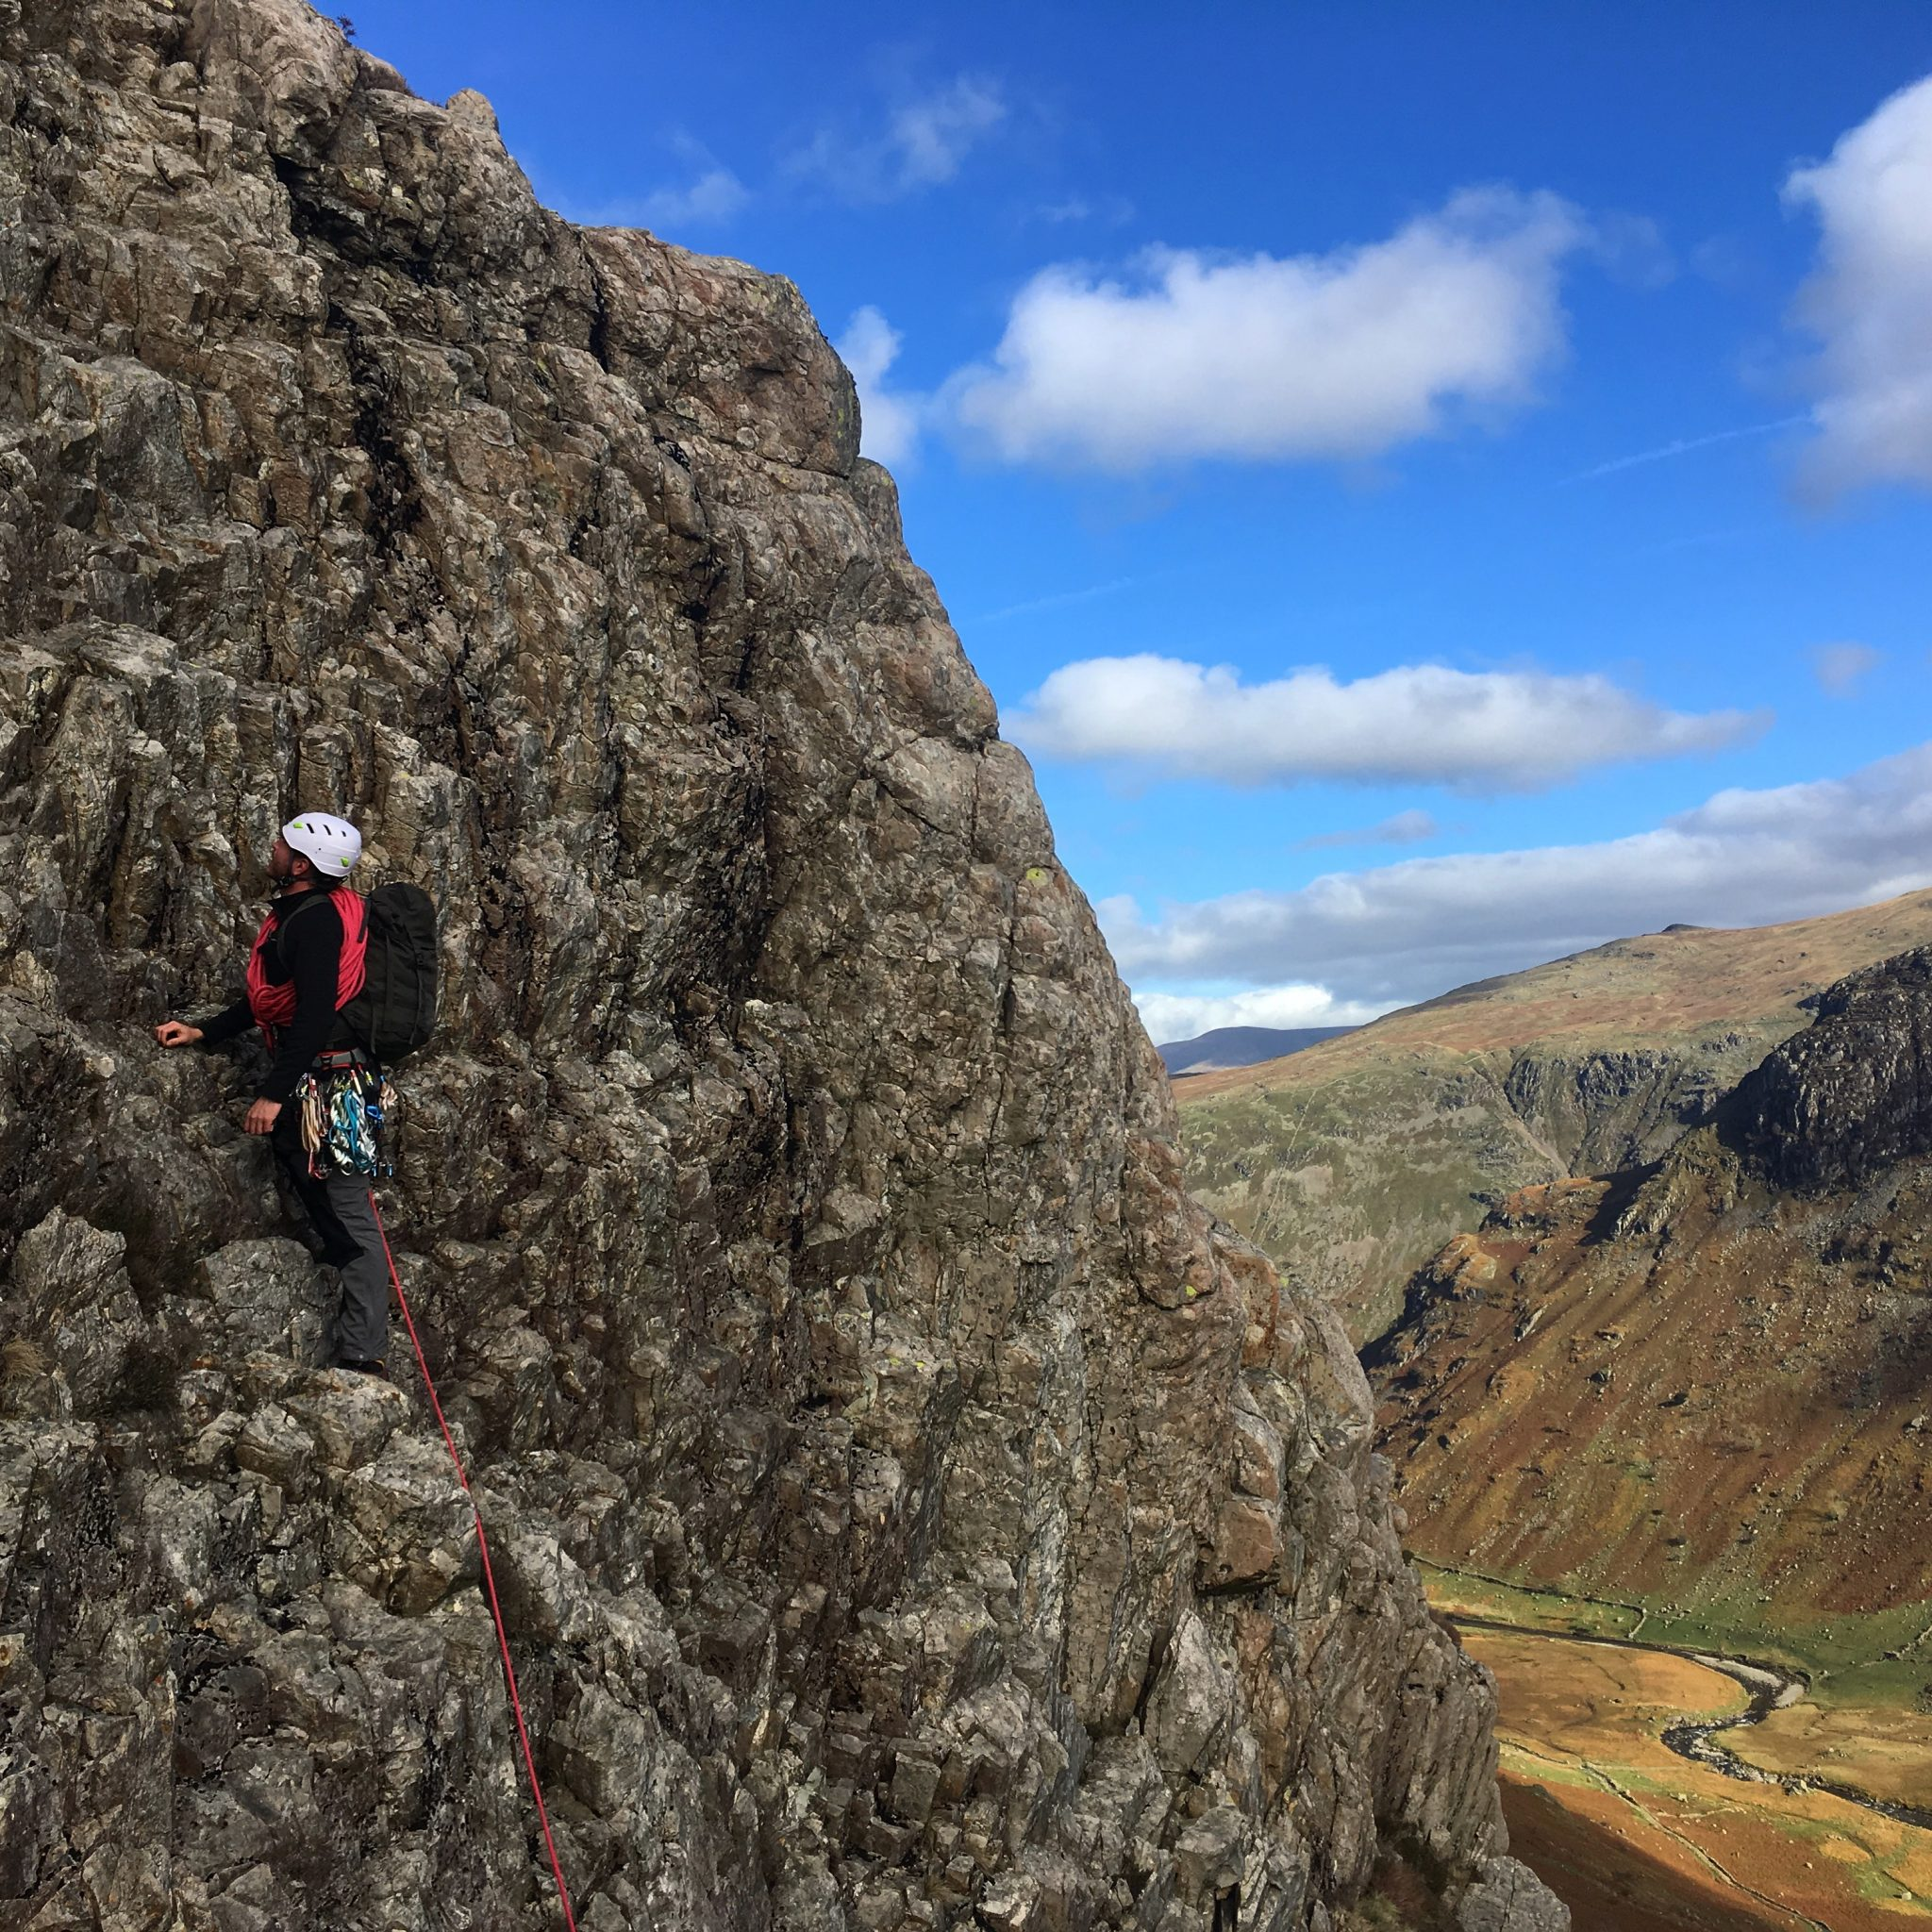 A climber practices his leading technique on Cam Crag Ridge during a scrambling course in the Lake District